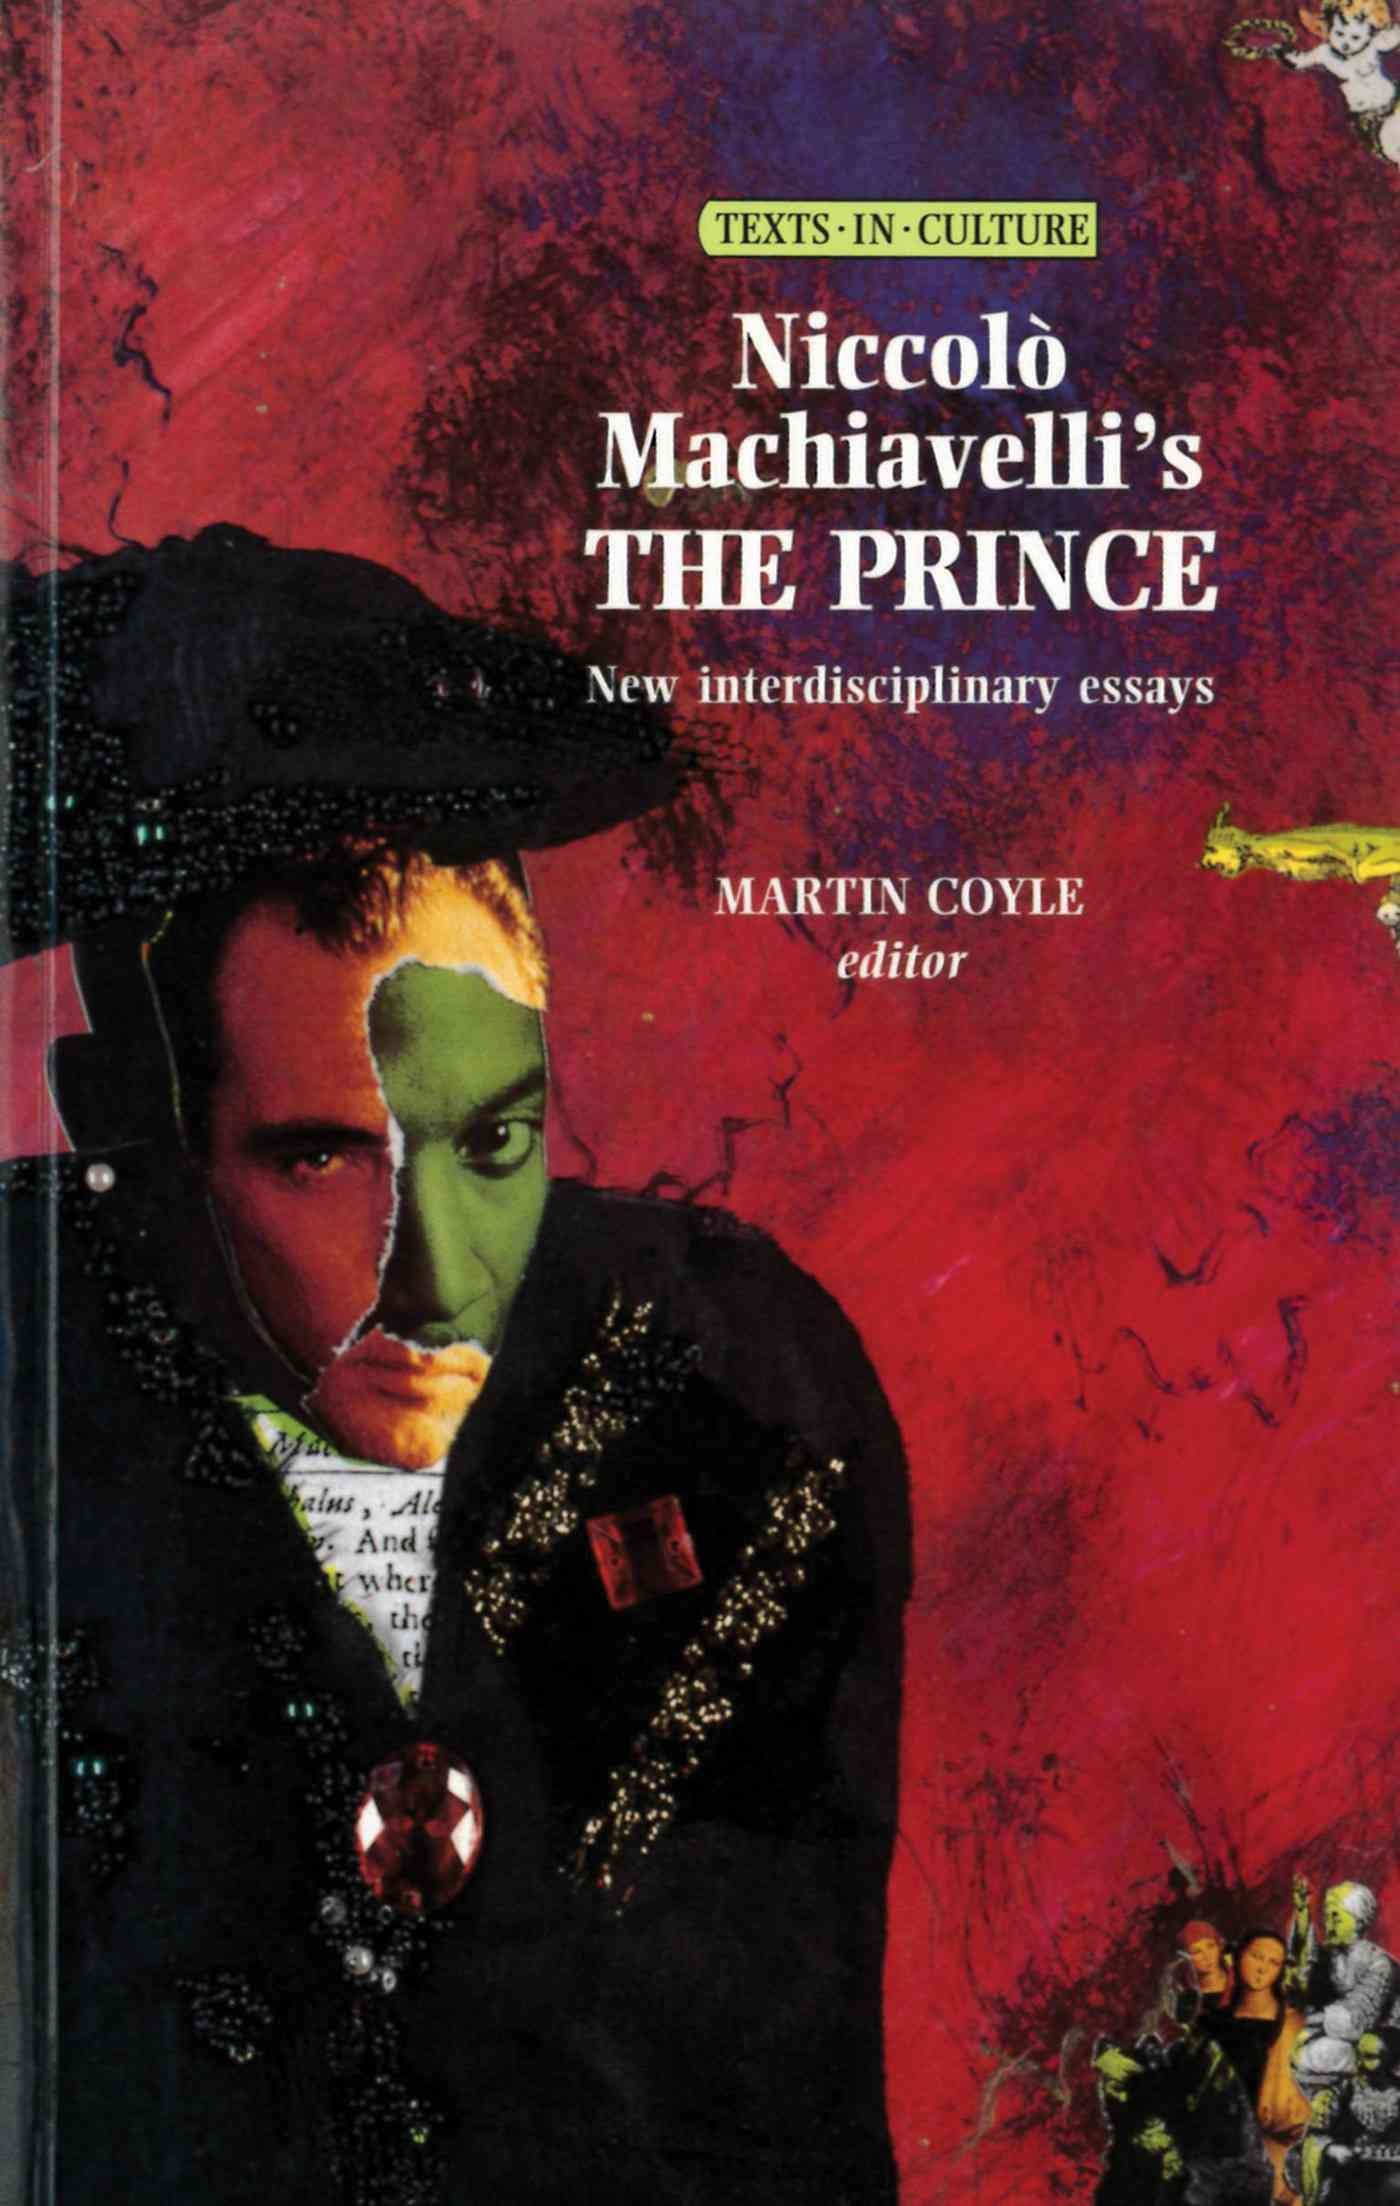 Essay on Machiavelli and The Prince